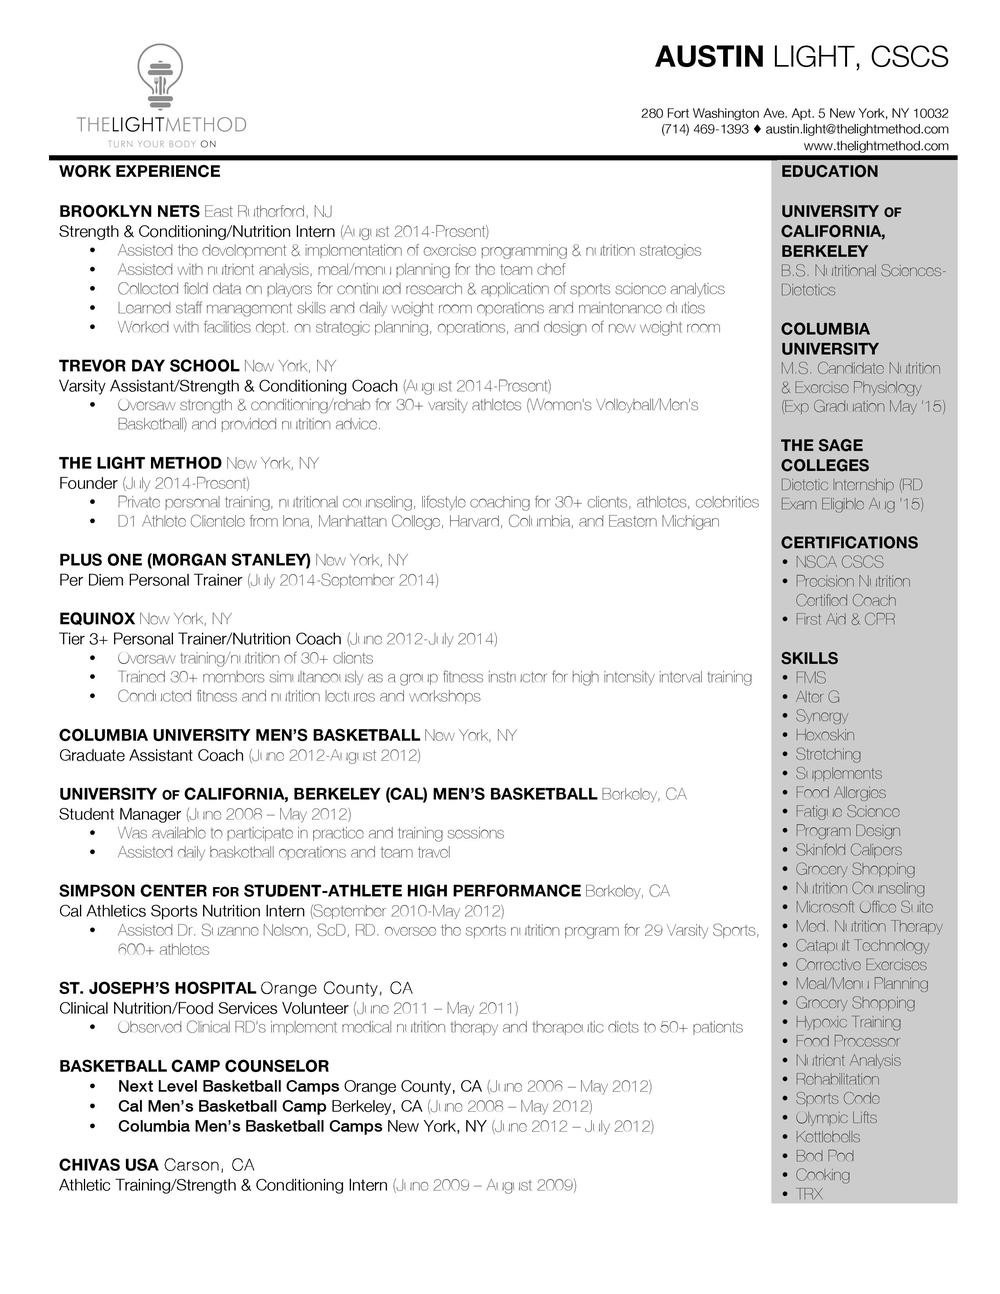 resume the light method austinlightresume jpg